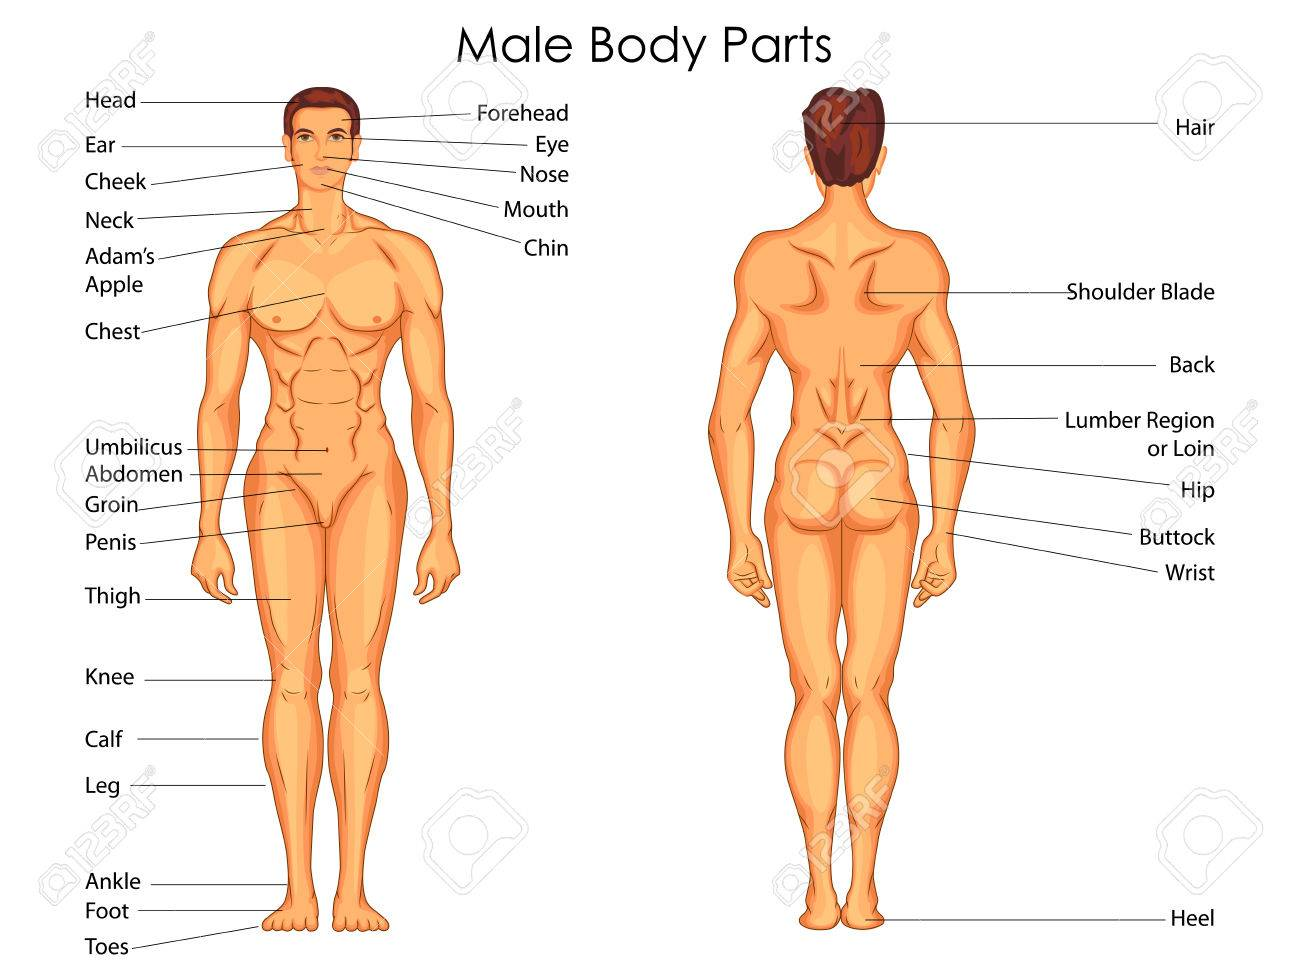 hight resolution of medical education chart of biology for male body parts diagram vector illustration stock vector